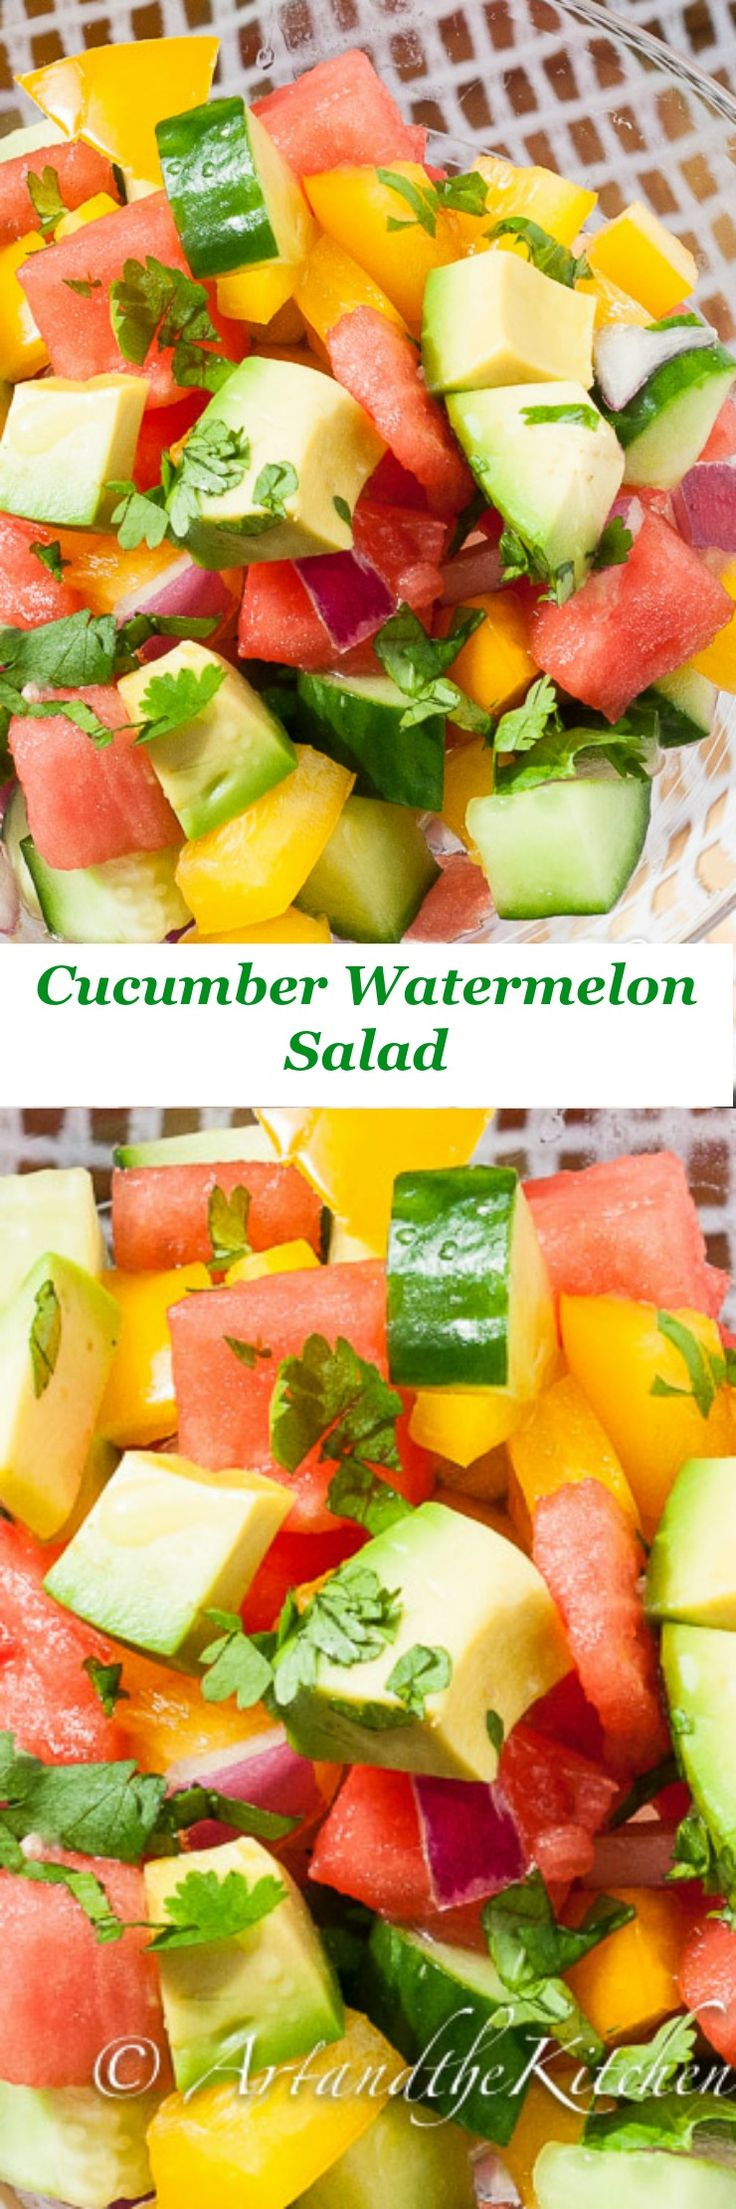 Cucumber Watermelon Salad is refreshingly delightful, tossed together with a light avocado oil citrus dressing spiked with Tequilla!